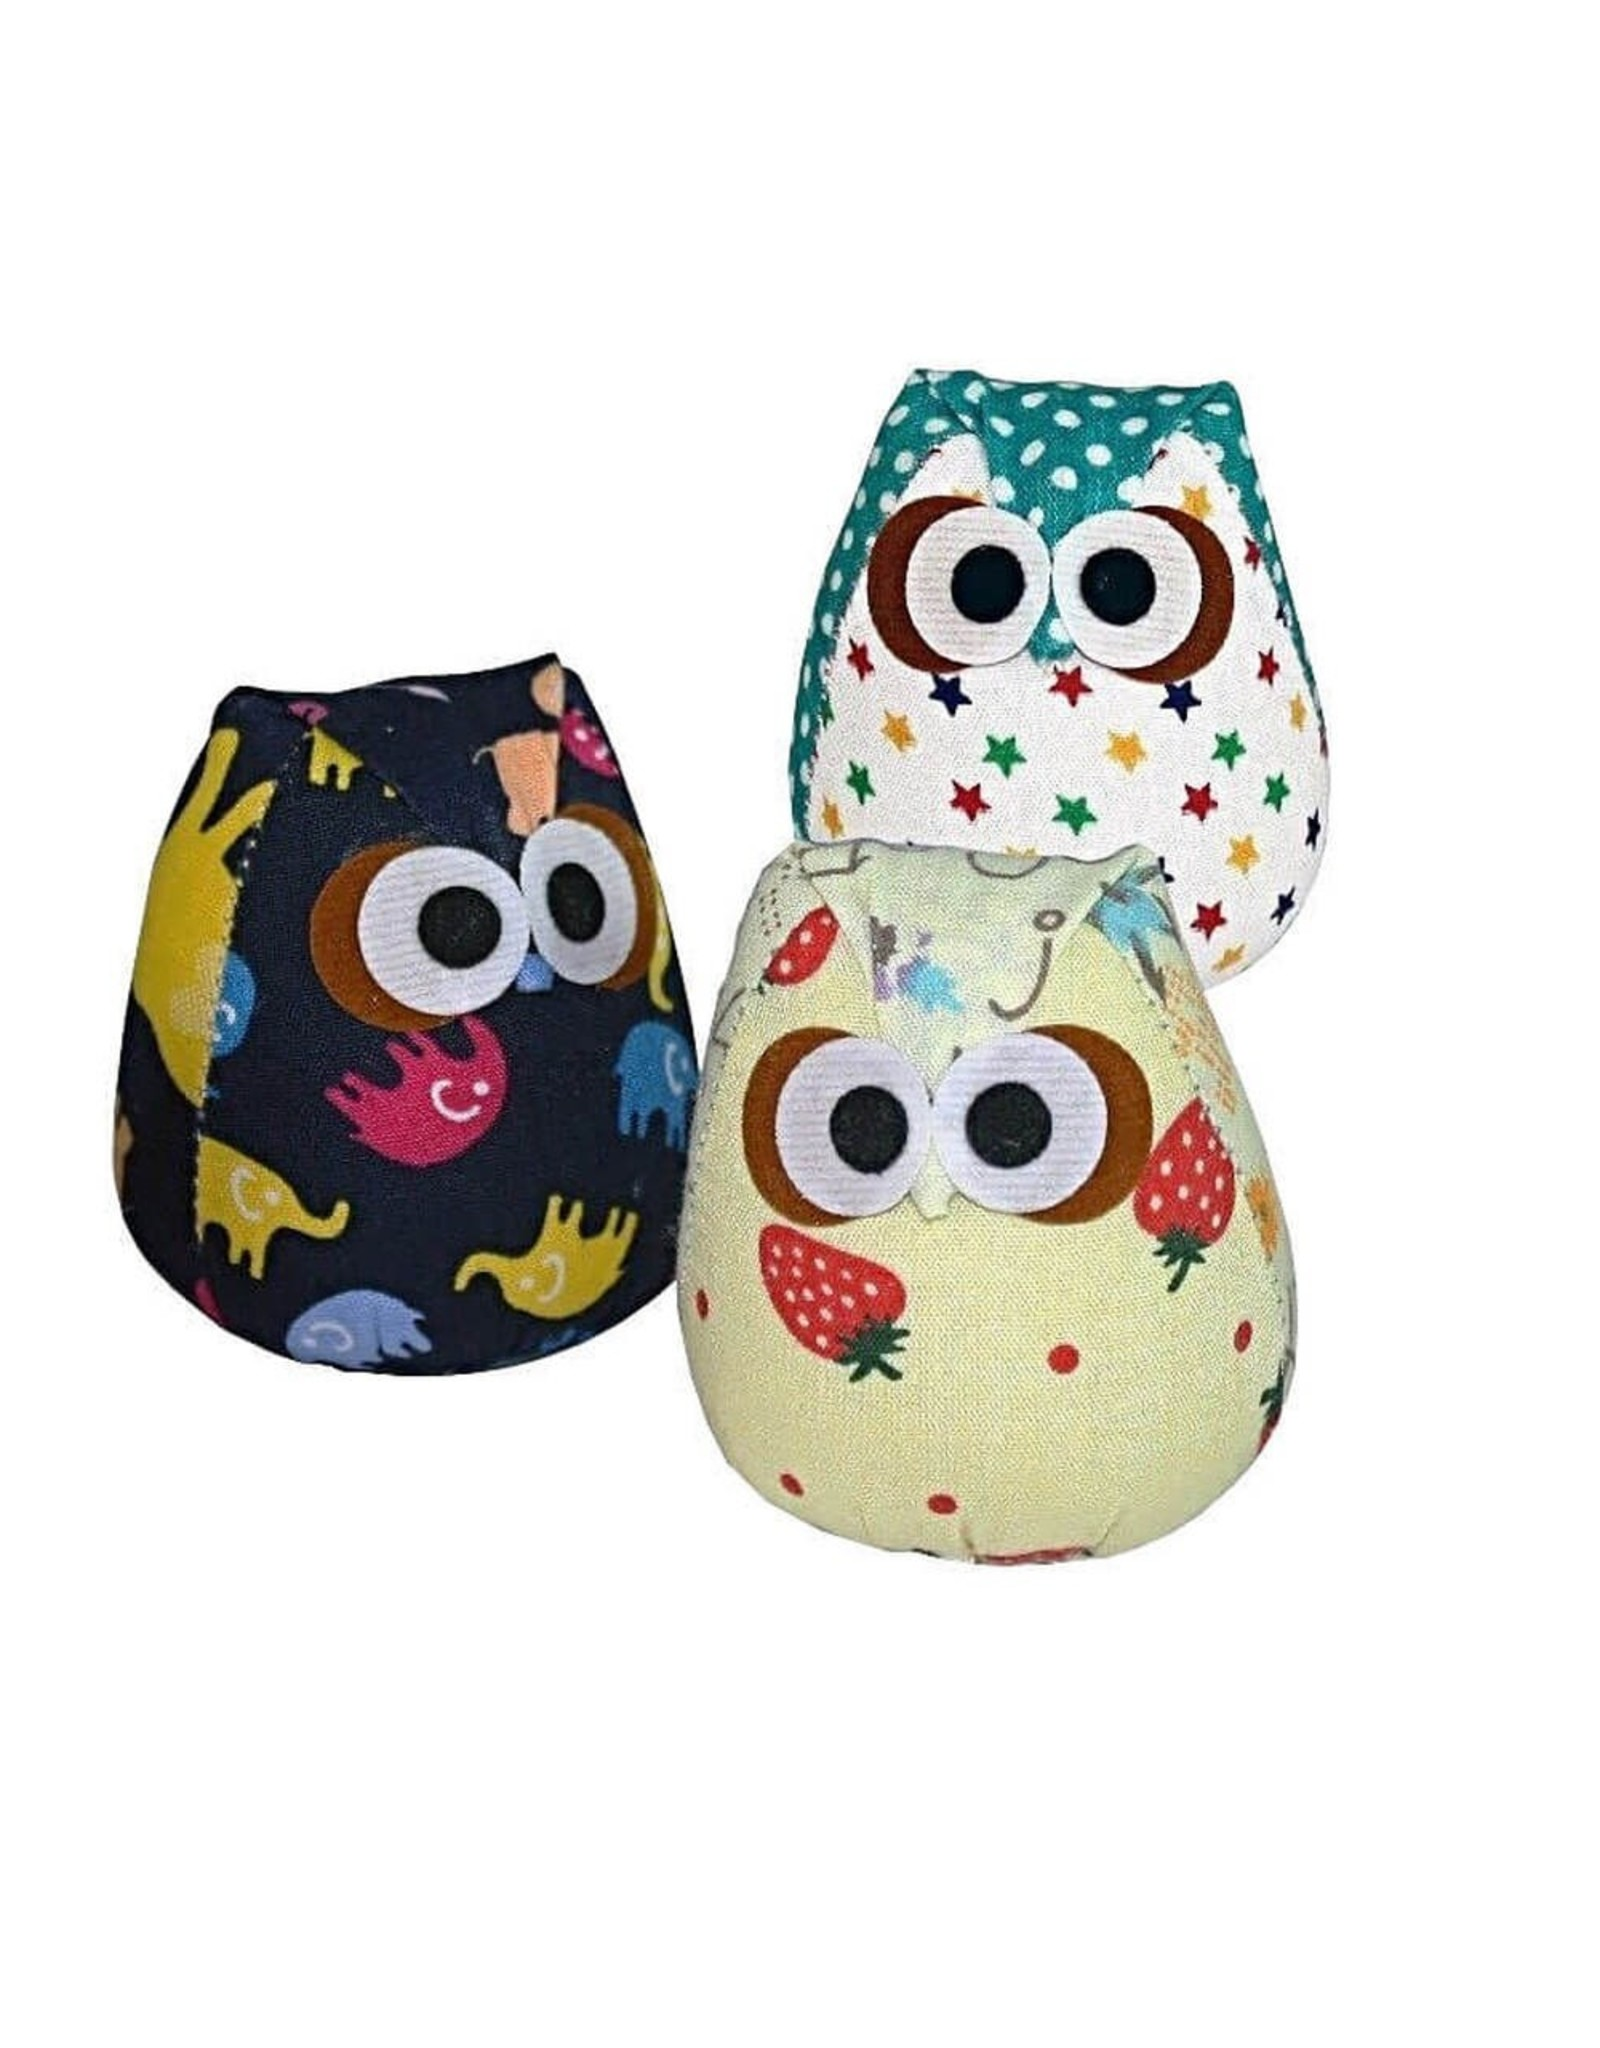 Goli Nip Naps Owl Cat Toy